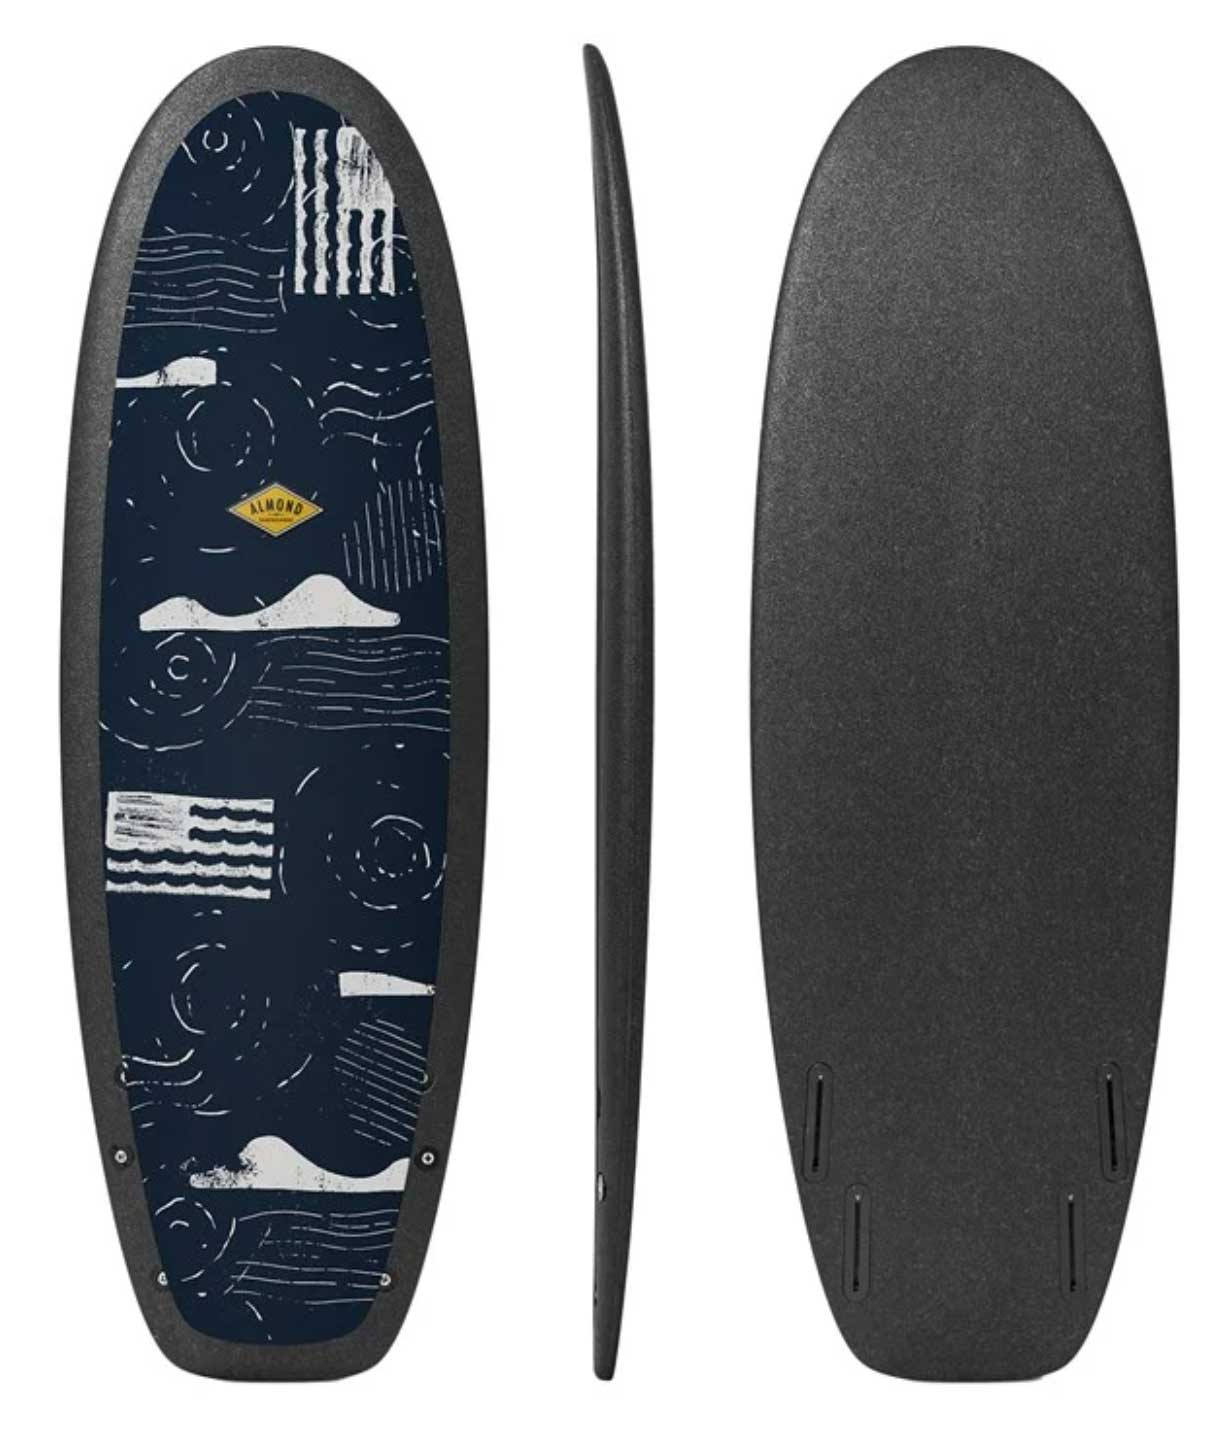 "Almond Surfboards R-Series 5'4"" Secret Menu Surfboard"